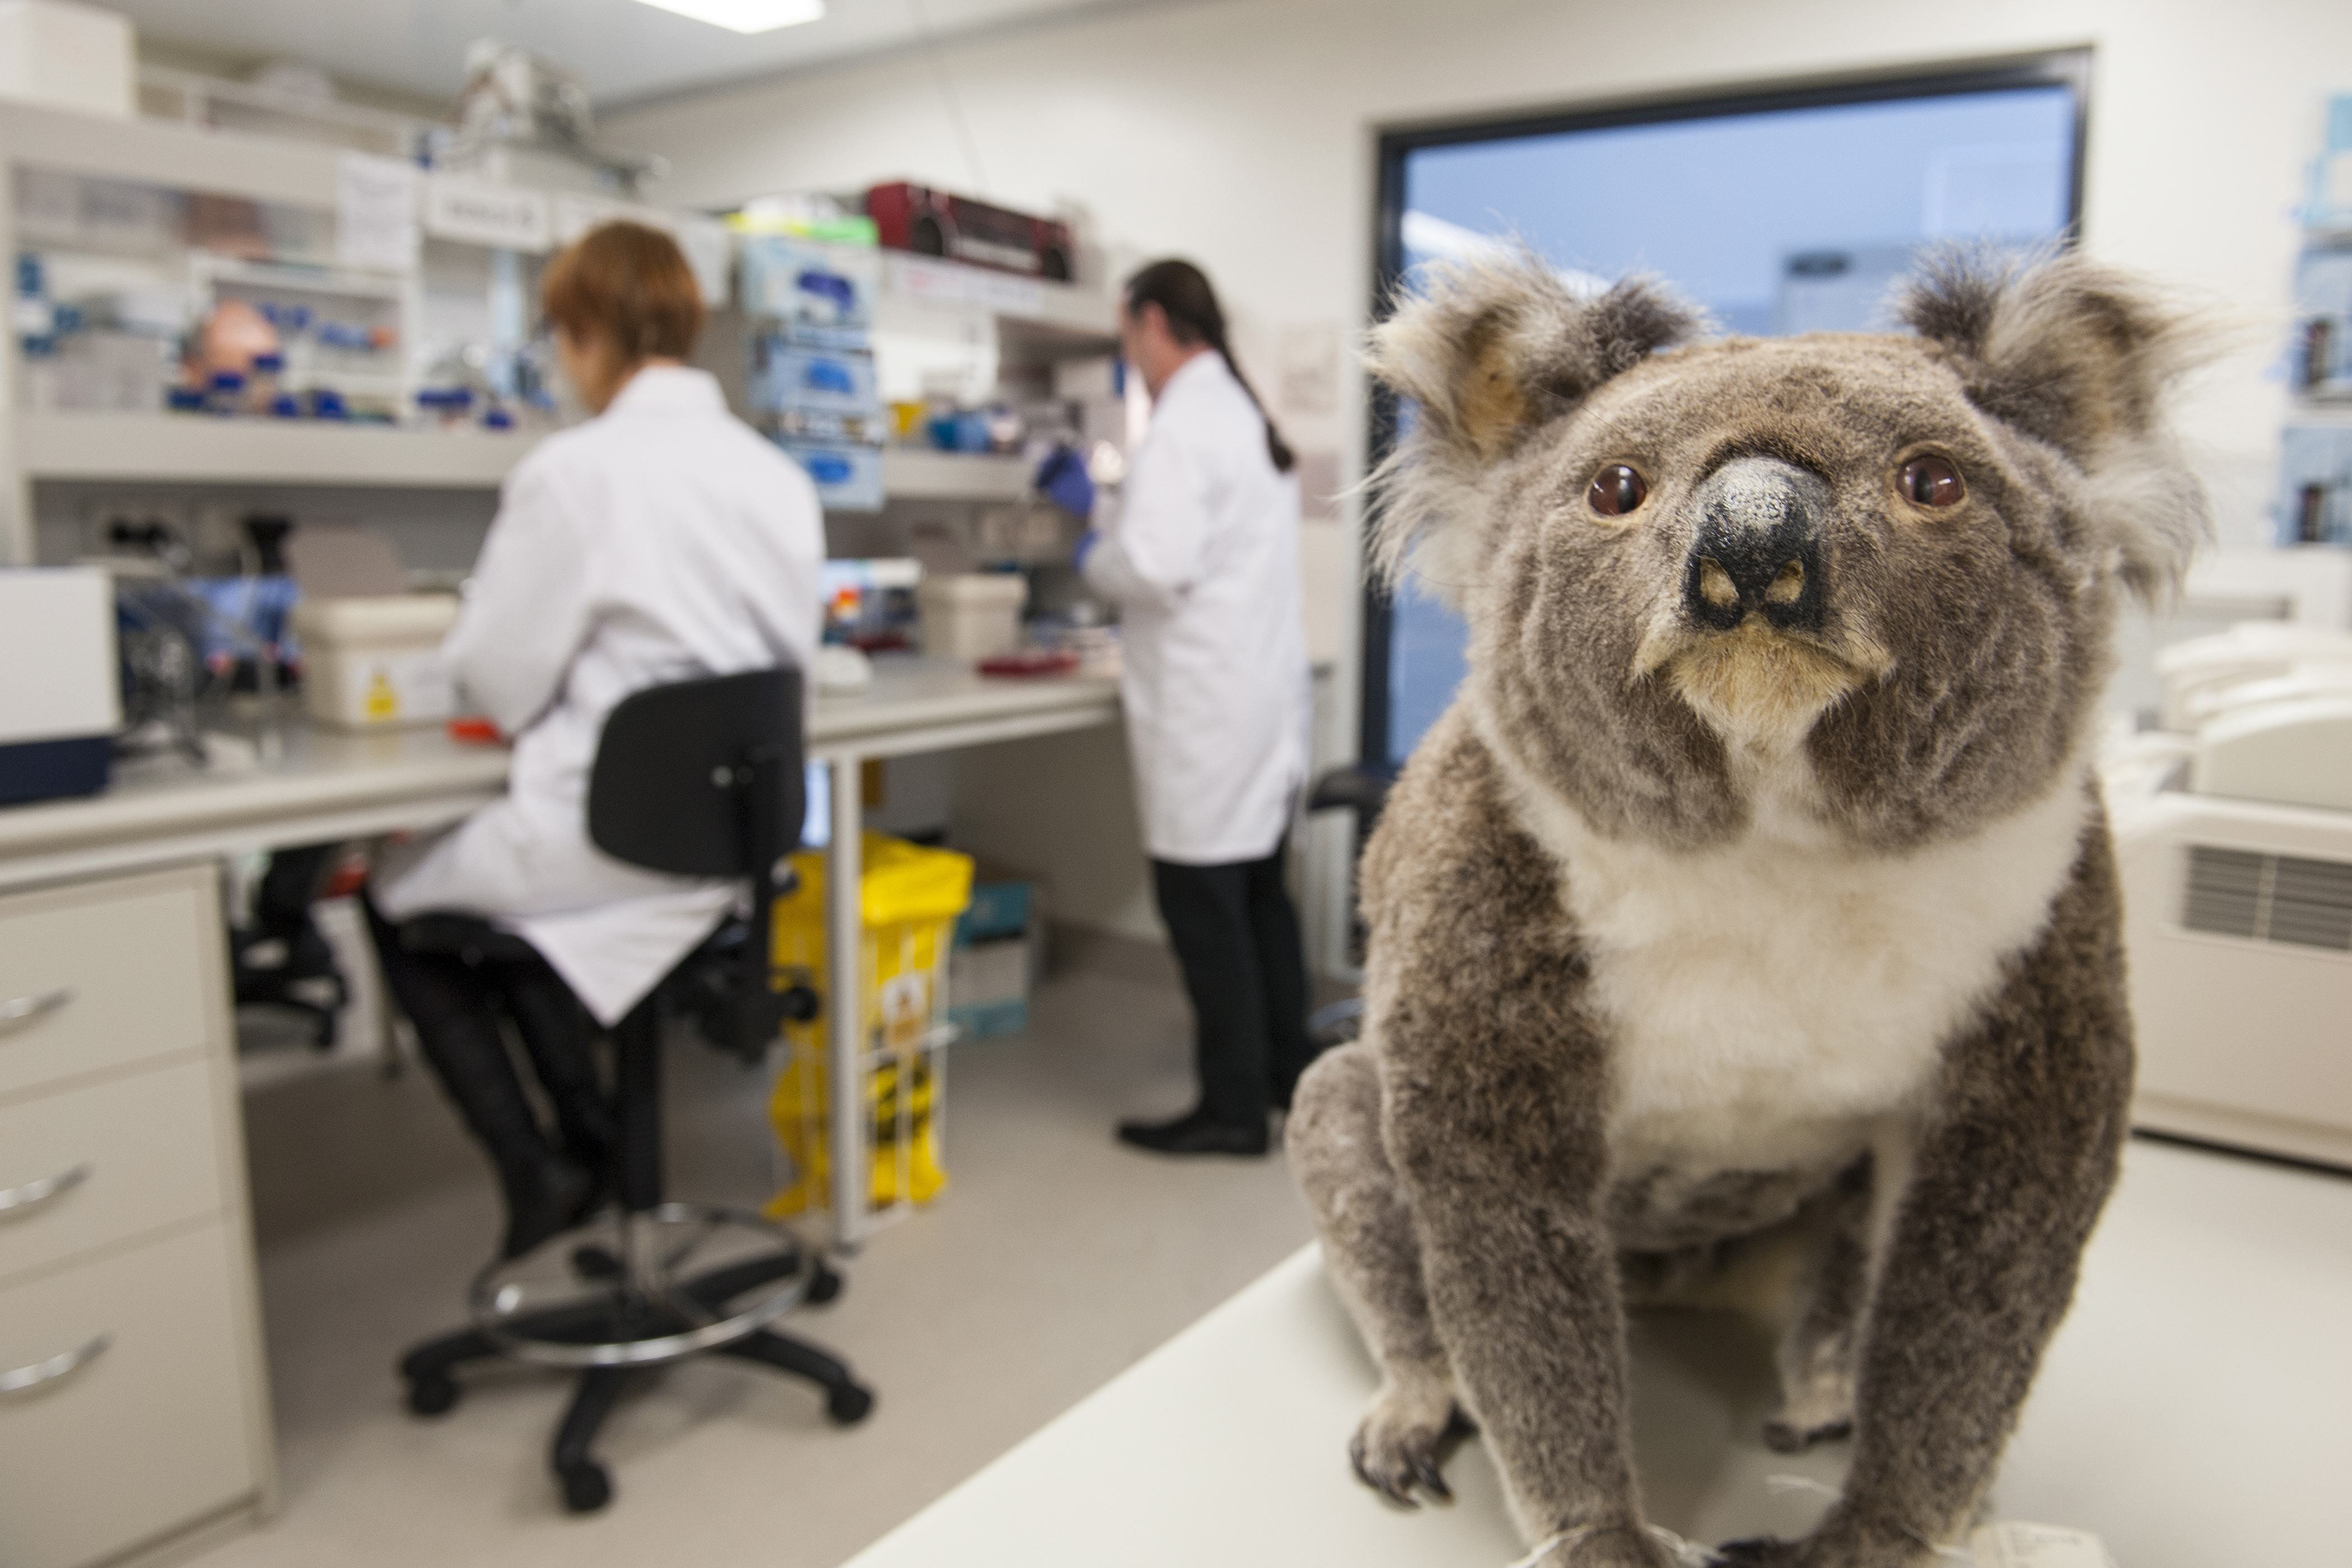 A koala in the DNA lab at the Australian Museum Research Institute. (Stuart Humphreys/Australian Museum Photo)